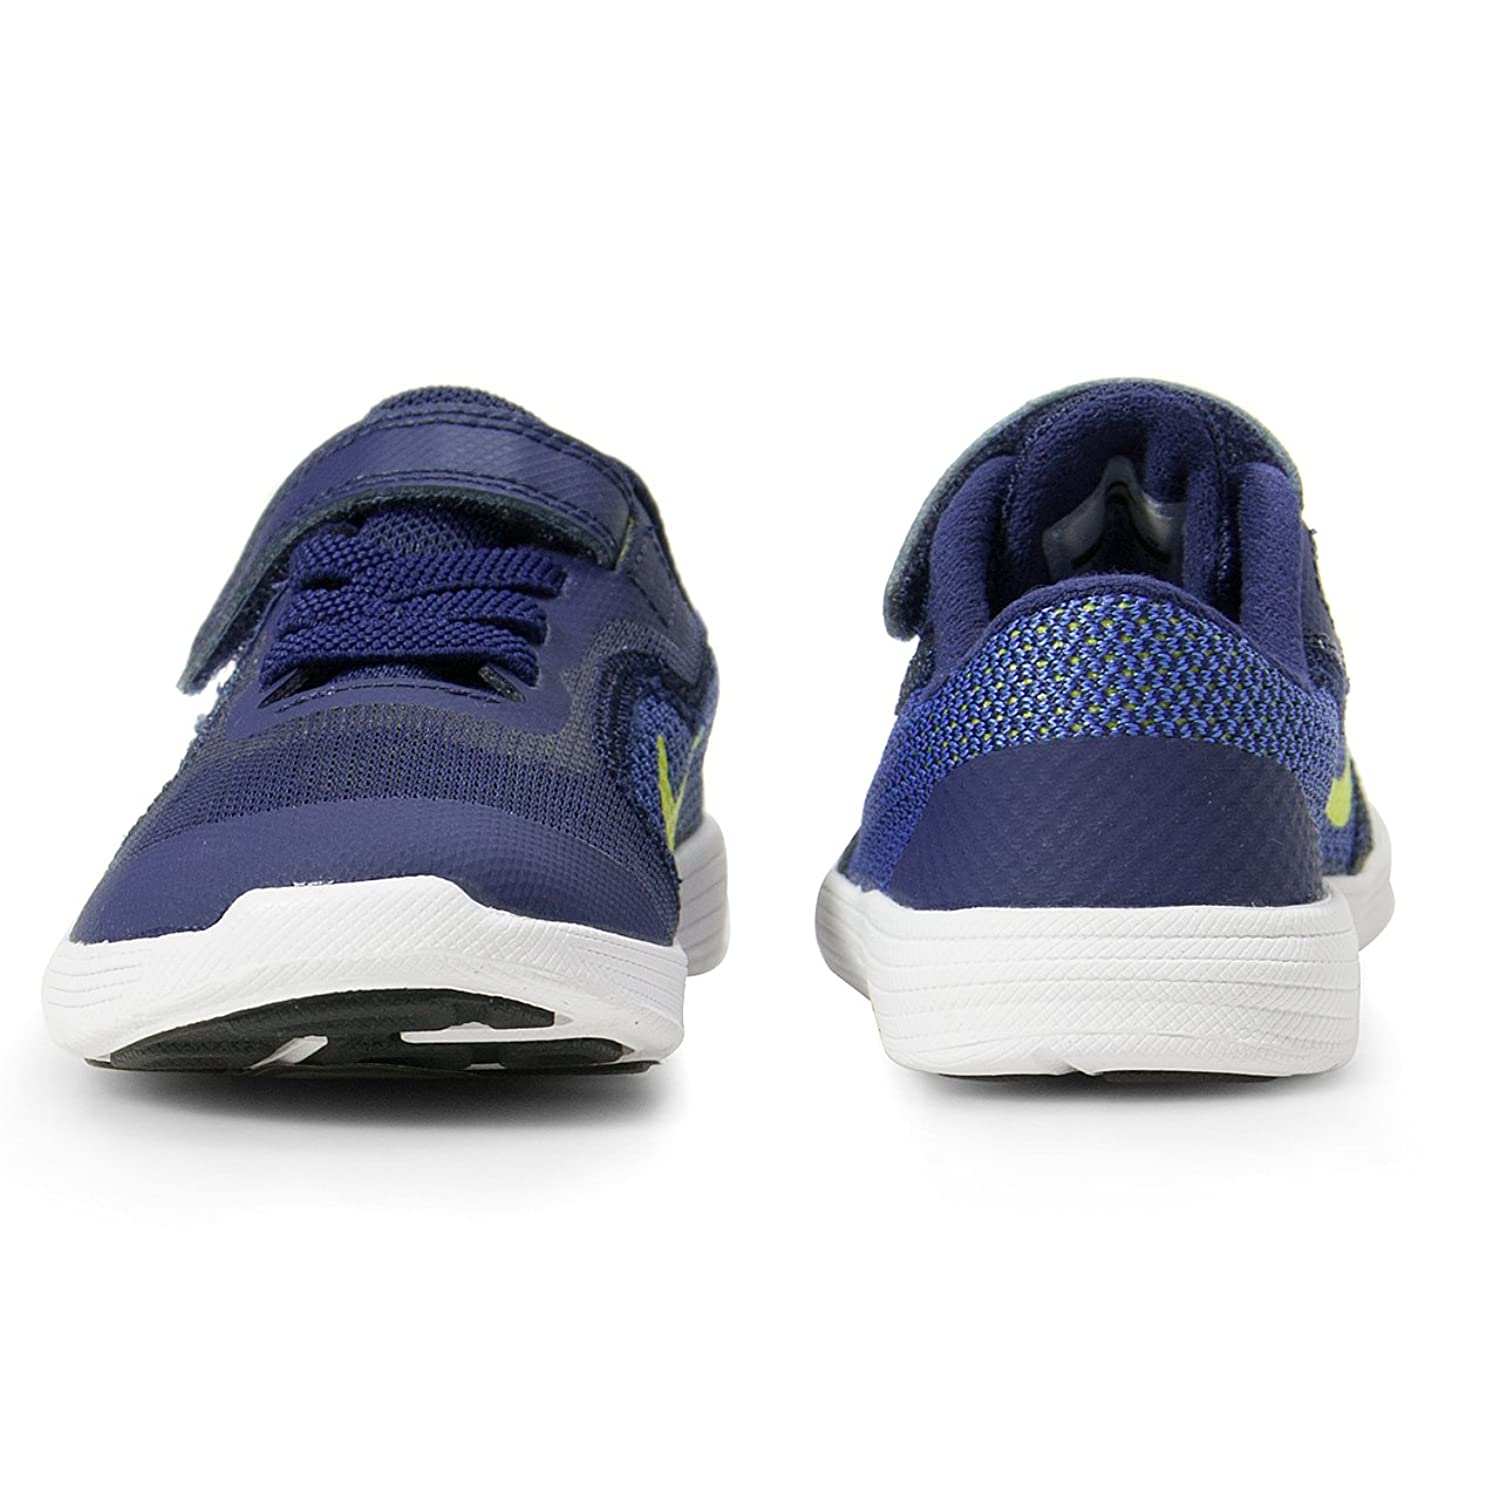 Nike Toddler Boy's Revolution 3 (2 Infant M, BINARY  BLUE/ELECTROLIME-PARAMOUNT BLUE): Amazon.ca: Shoes & Handbags